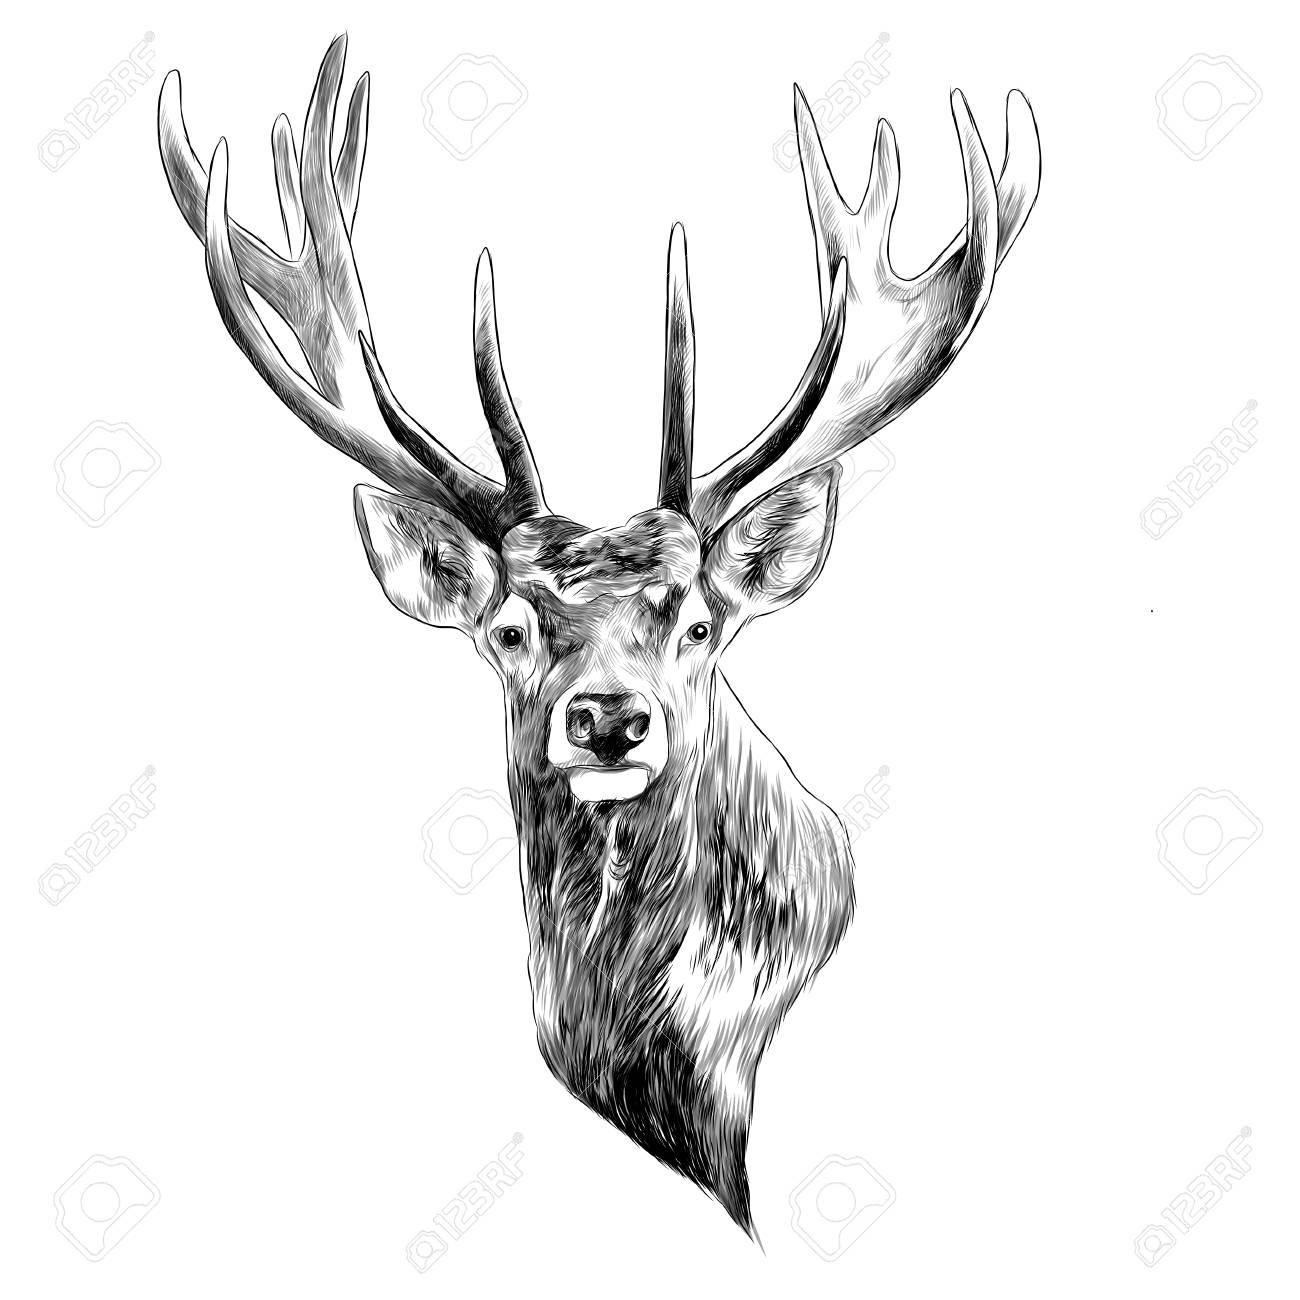 Stag deer head sketch graphic design stock vector 91604384